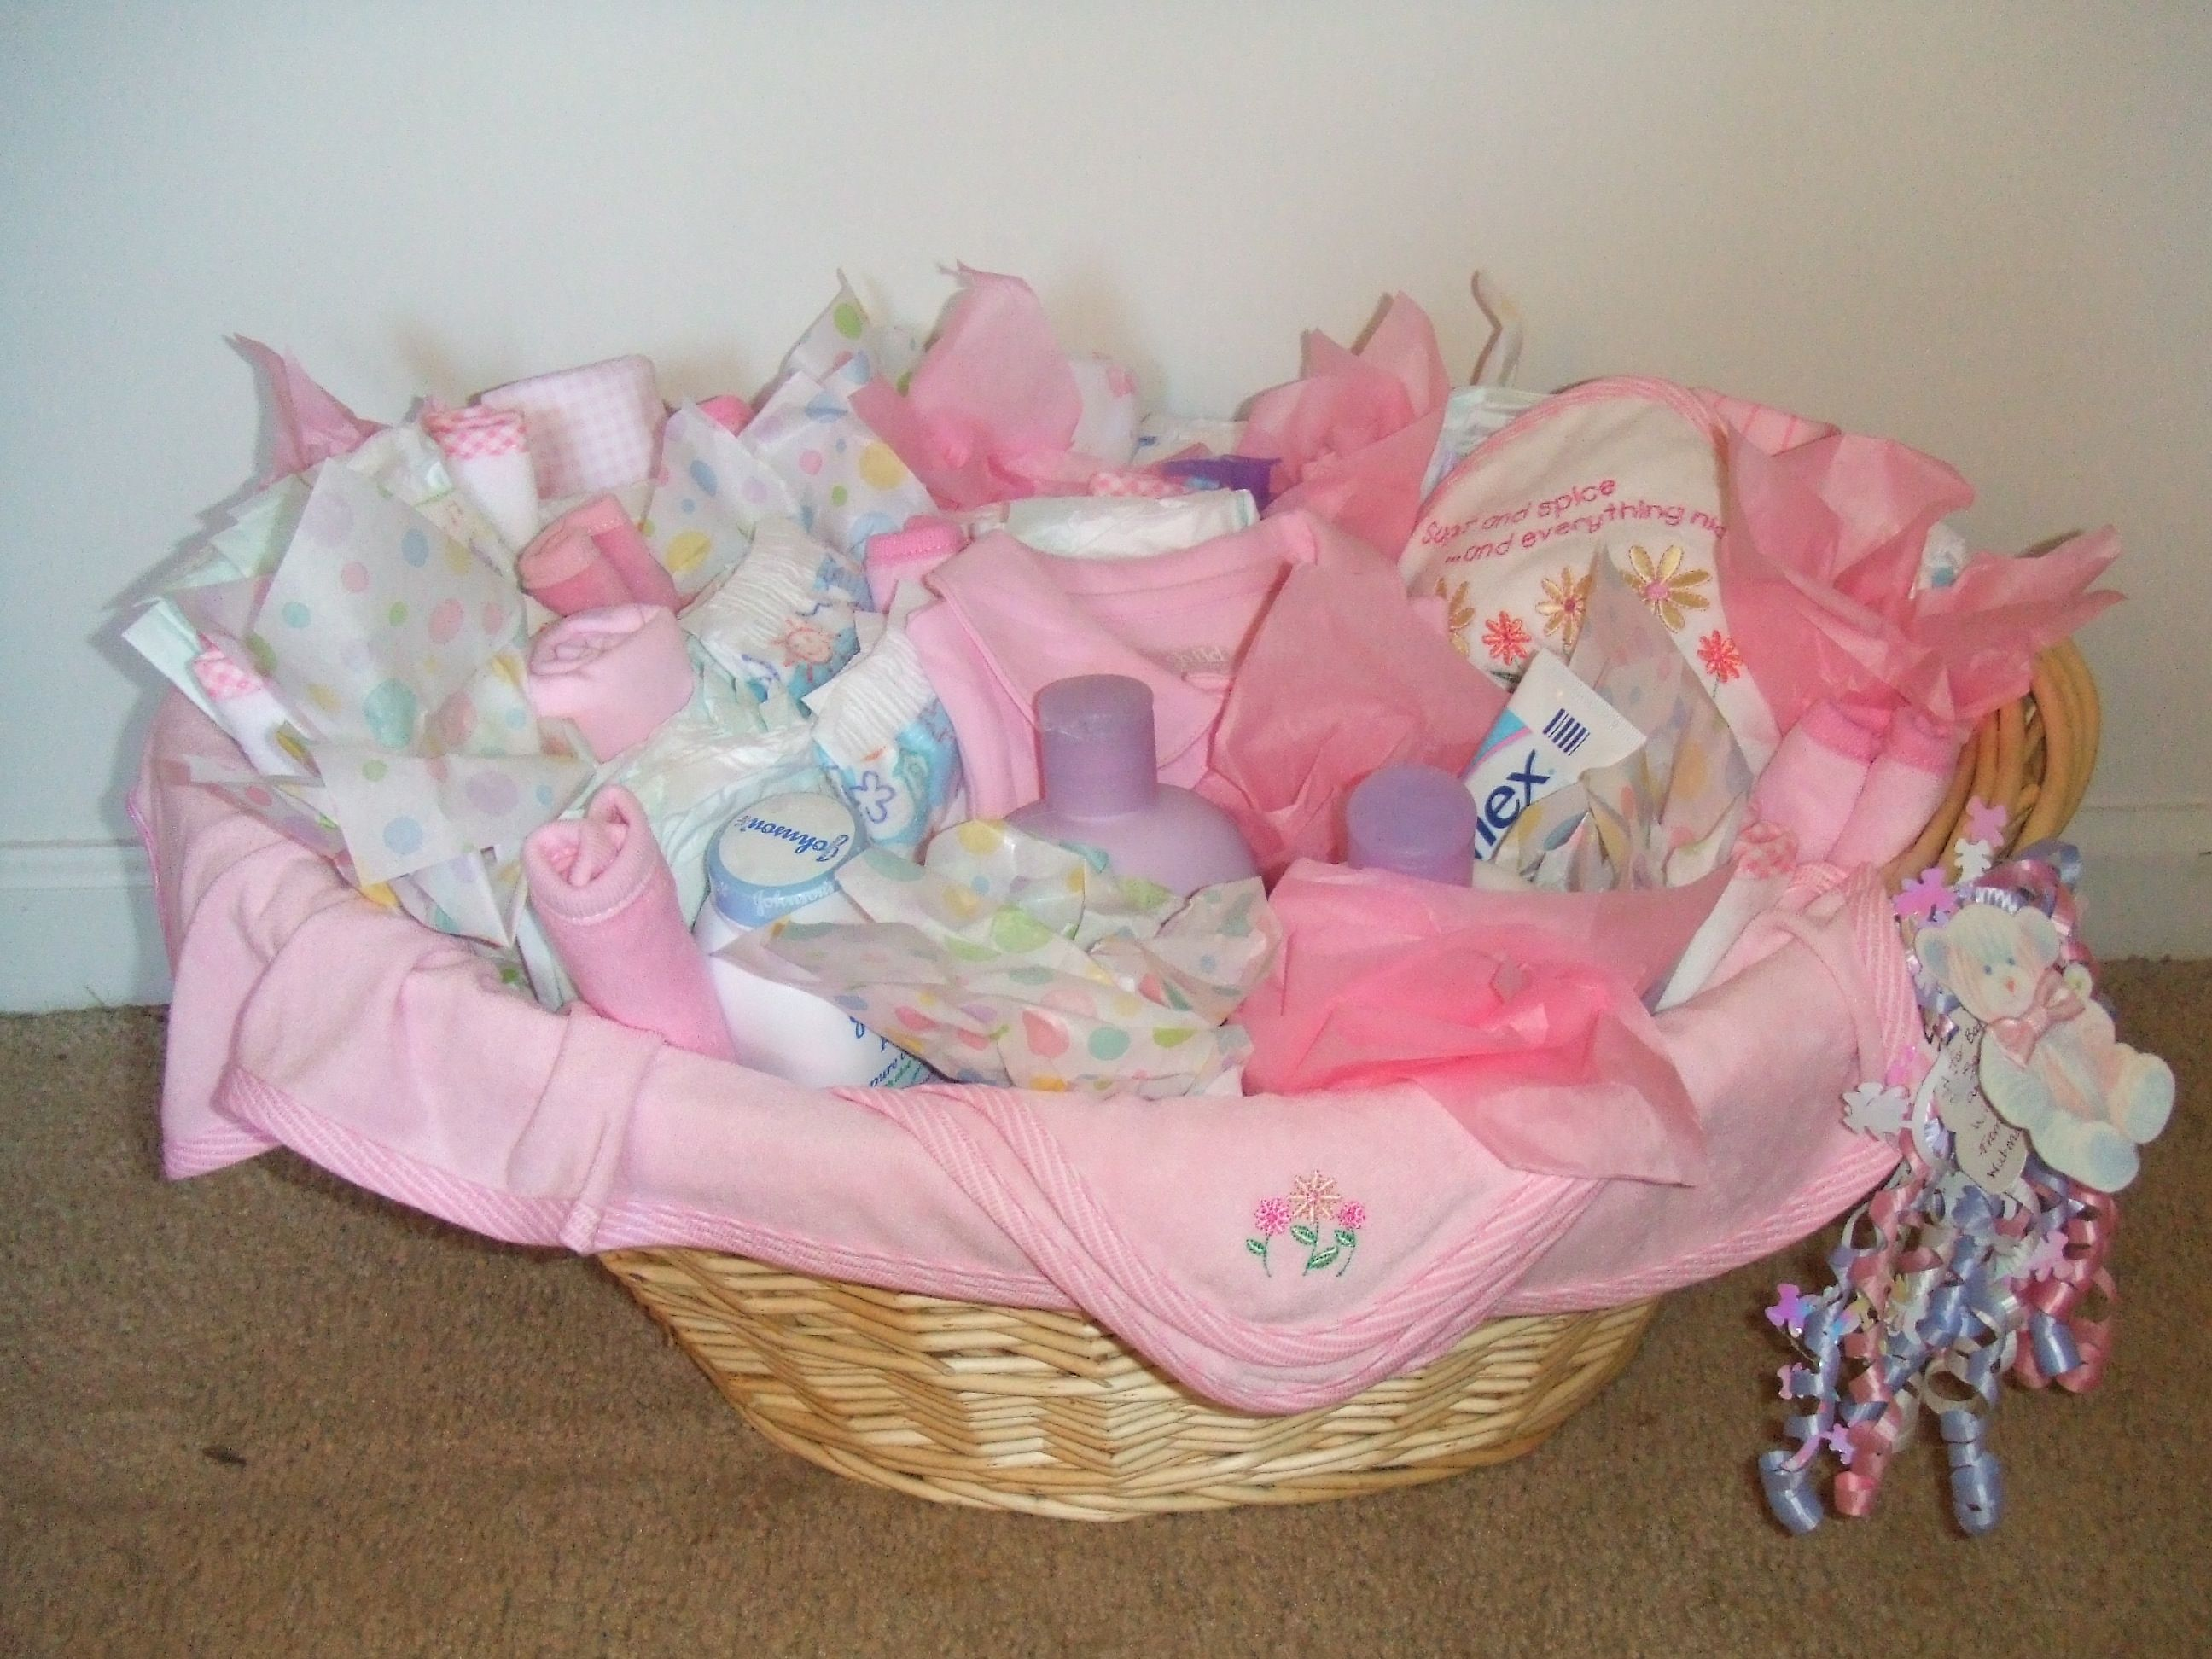 Baby Girl Basket (front view)